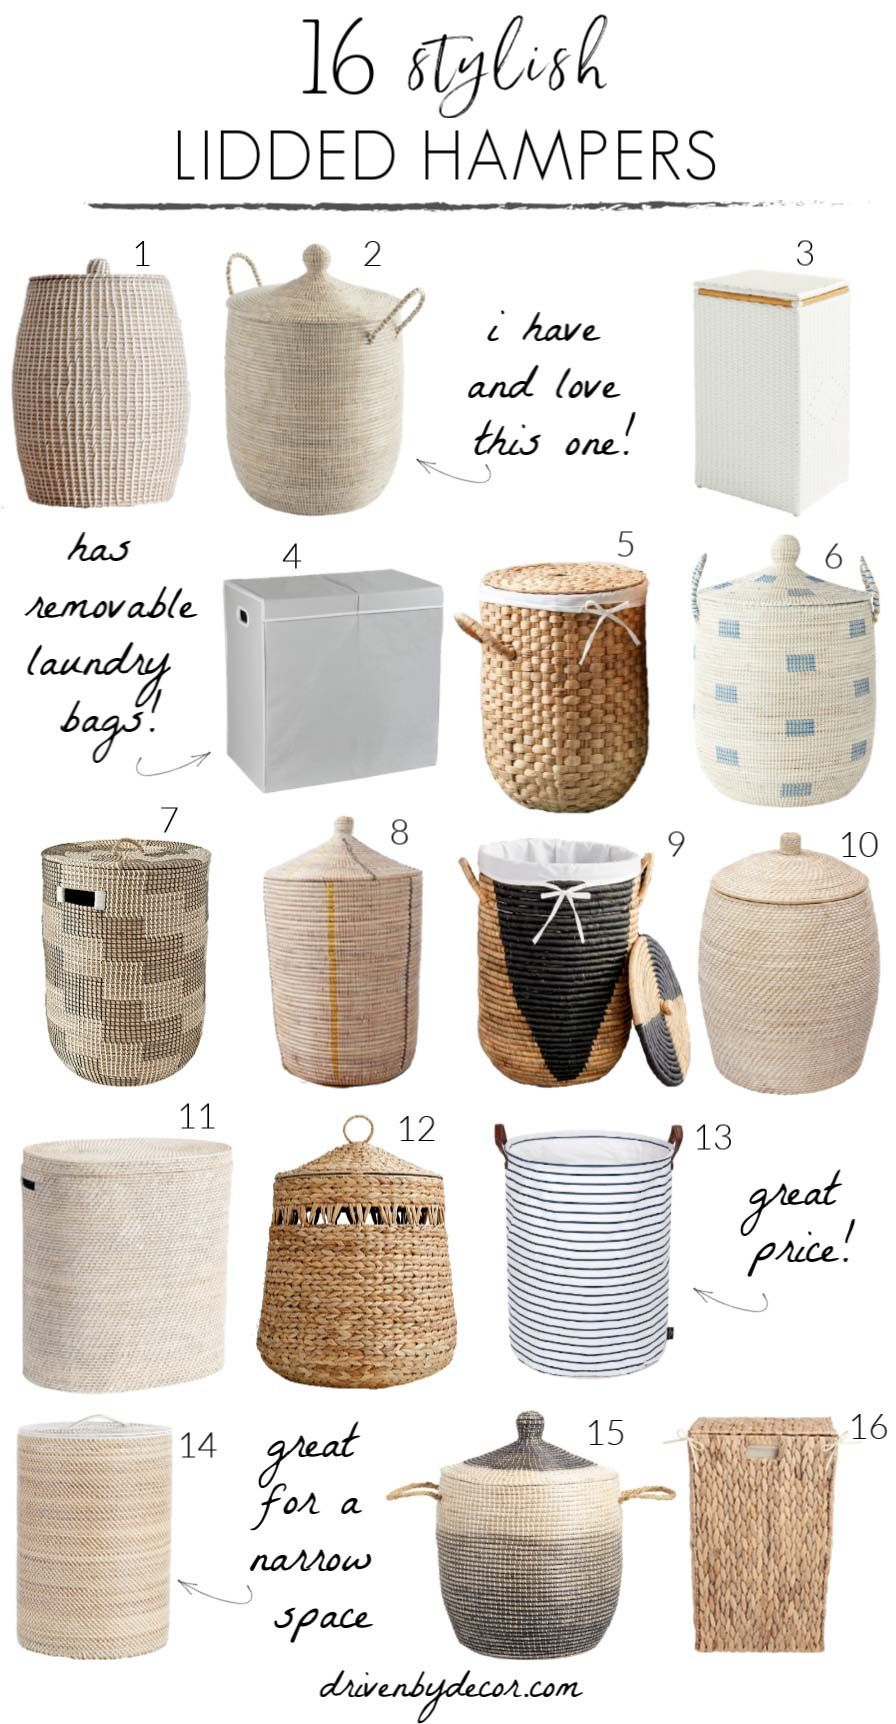 Love all of these lidded hampers! So may beautiful bathroom decor ideas in her post!